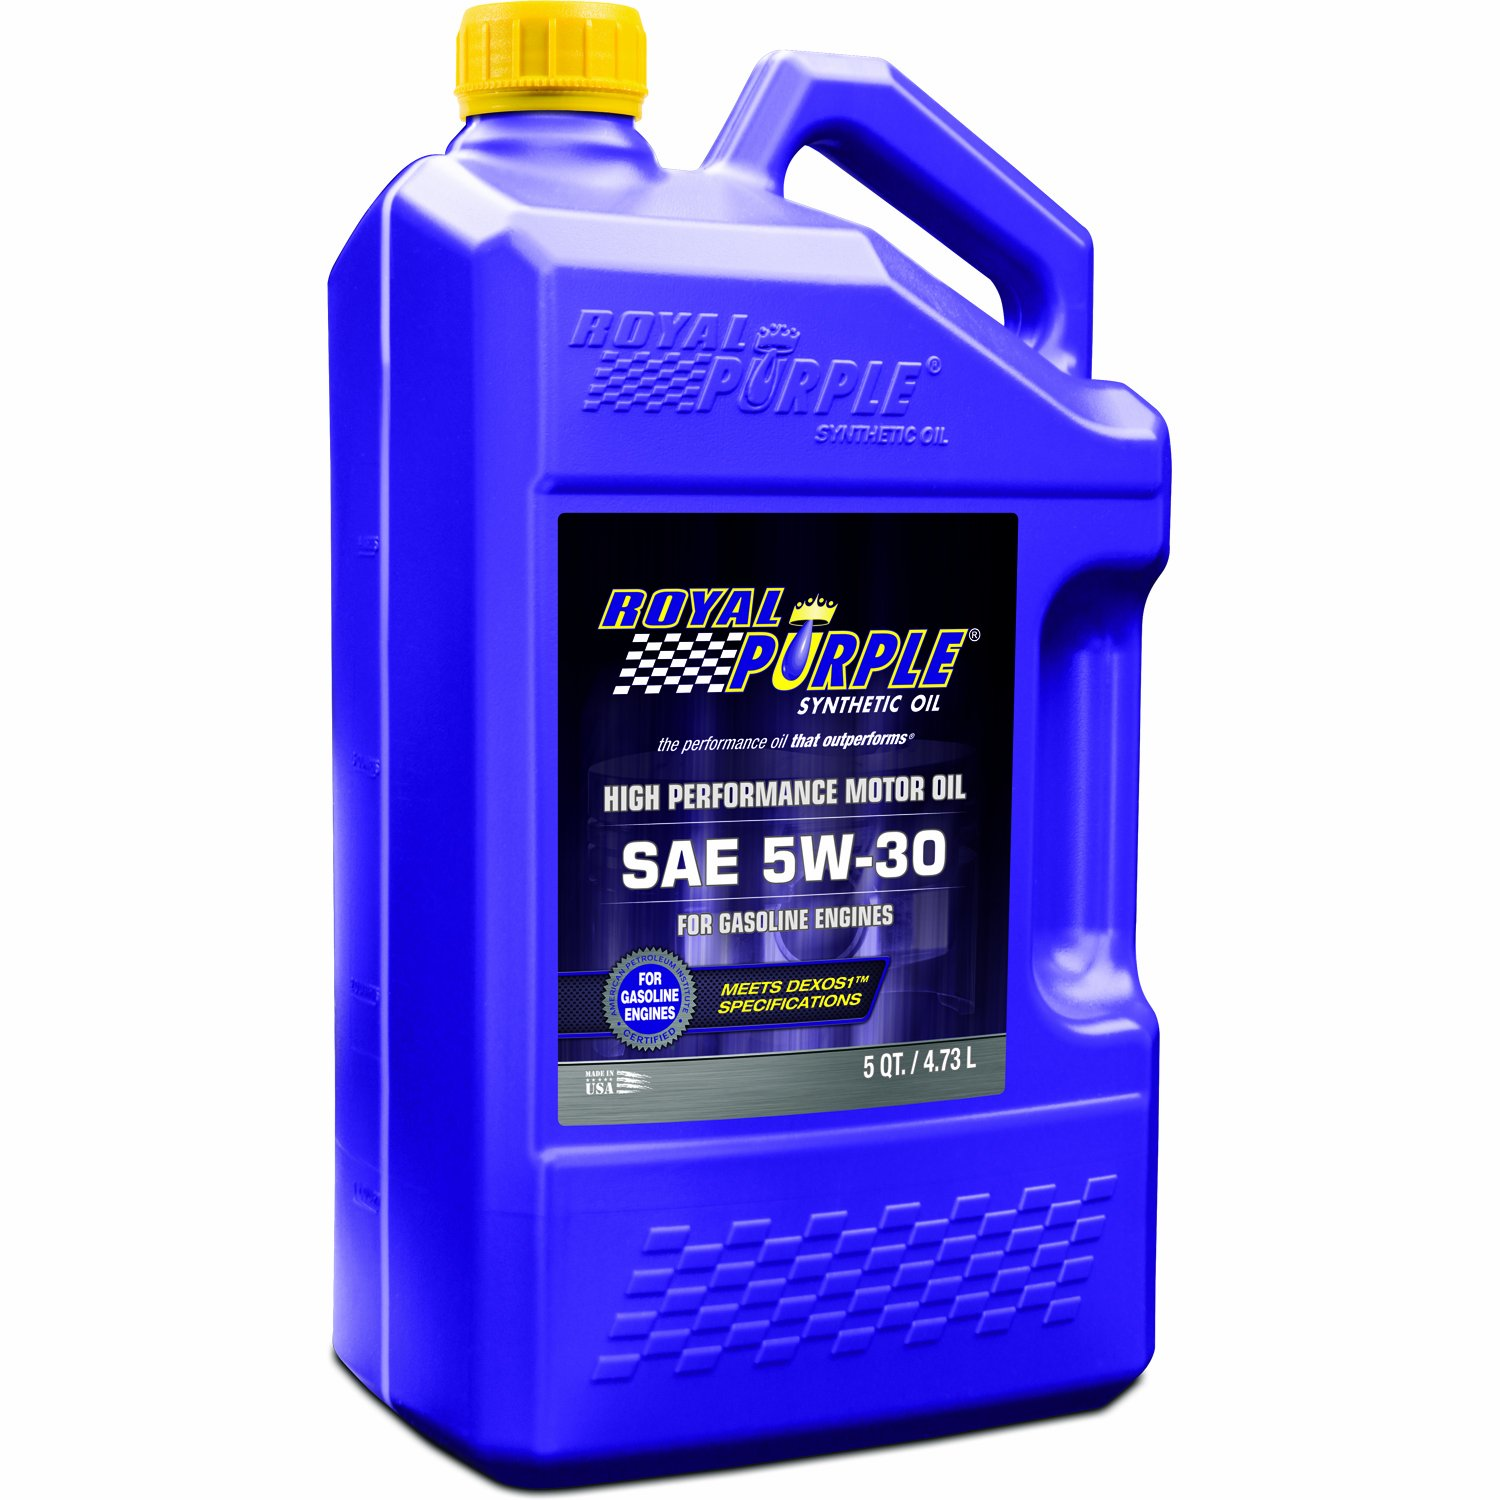 Car Care Cleaning Kits Review